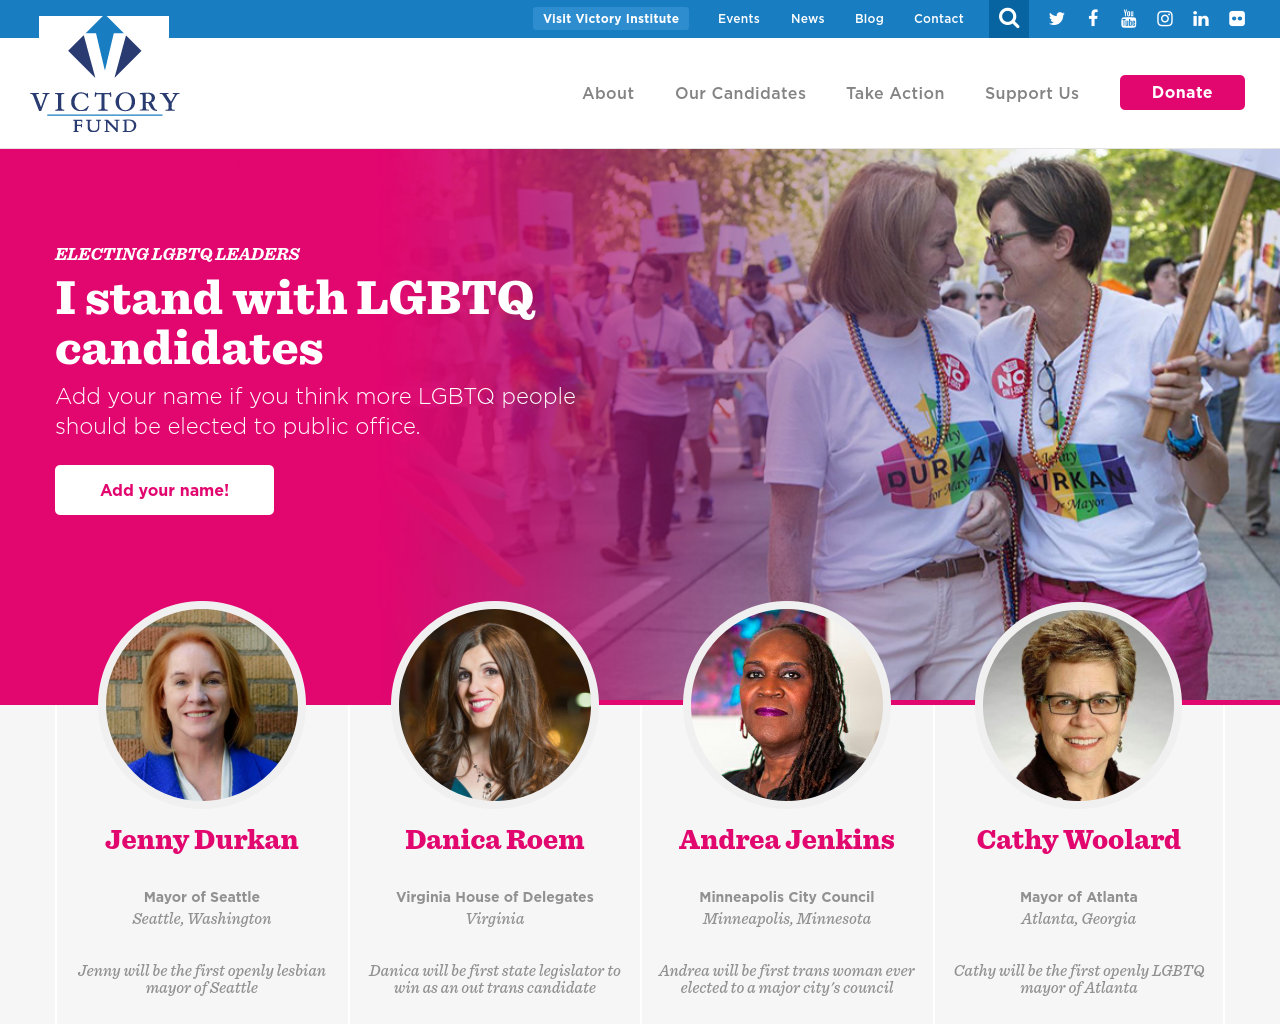 Gay-&-Lesbian-Victory-Fund-Advertising-Reviews-Pricing